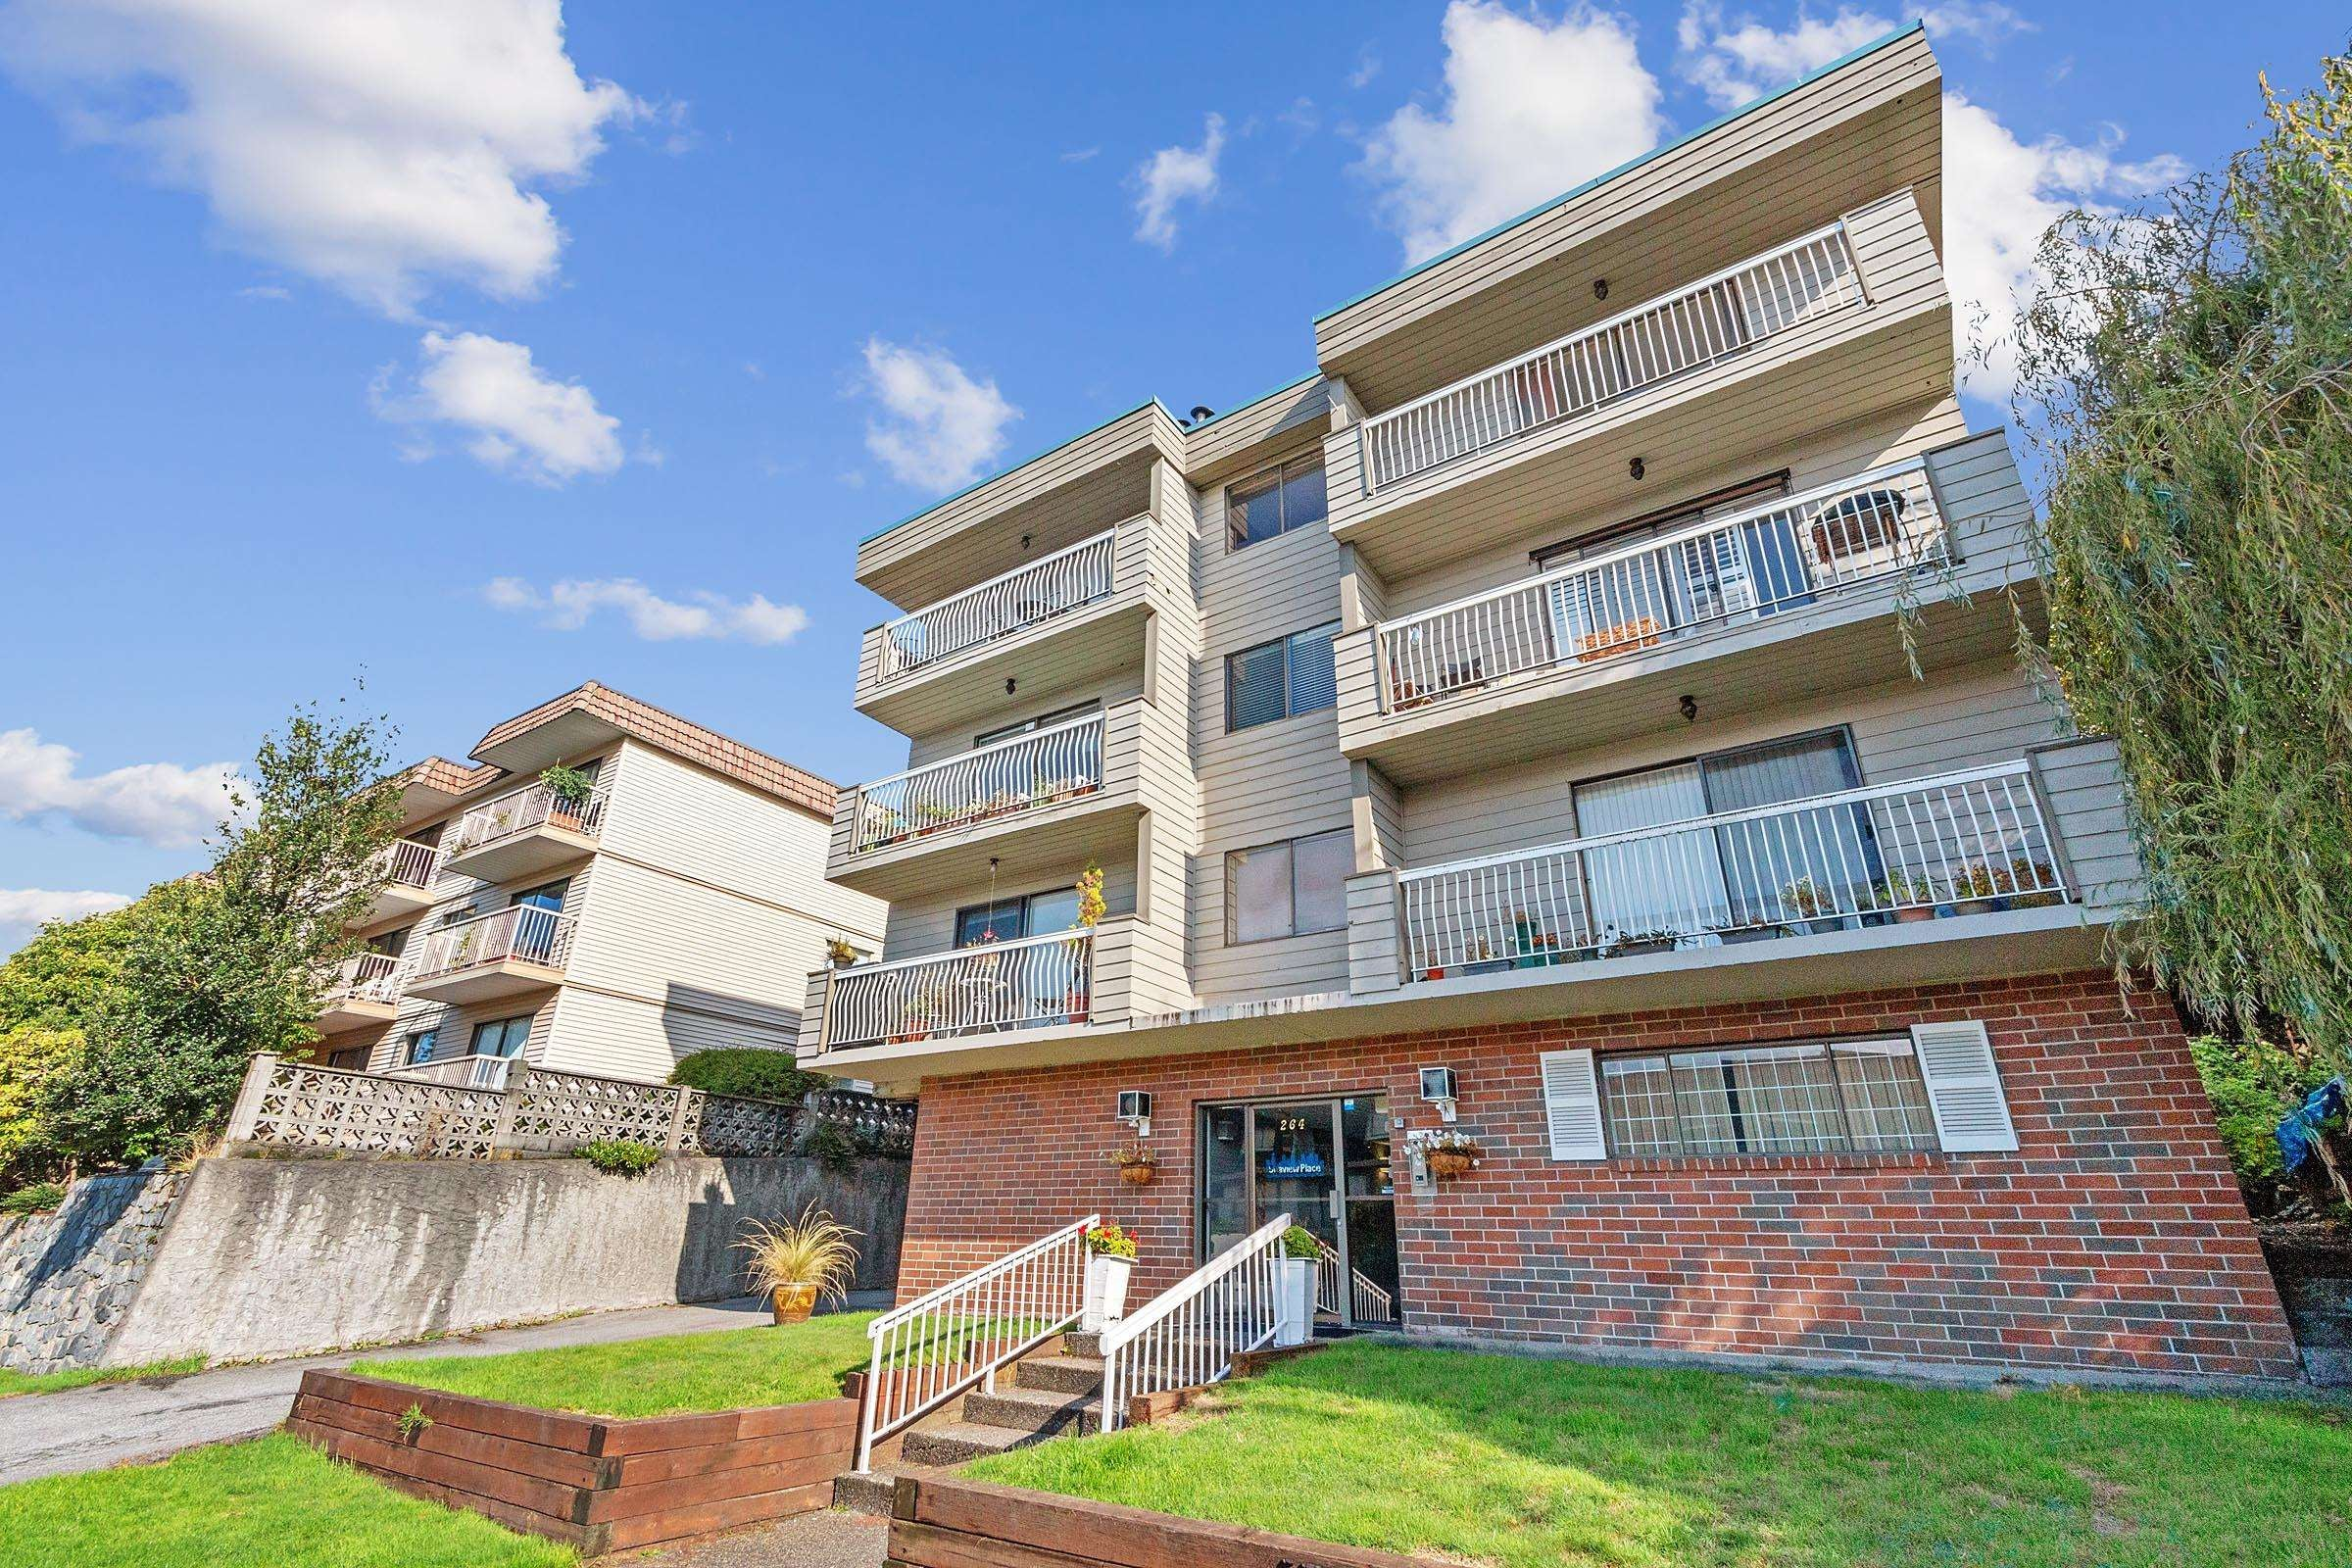 301 264 W 2ND STREET - Lower Lonsdale Apartment/Condo for sale, 2 Bedrooms (R2625527) - #2